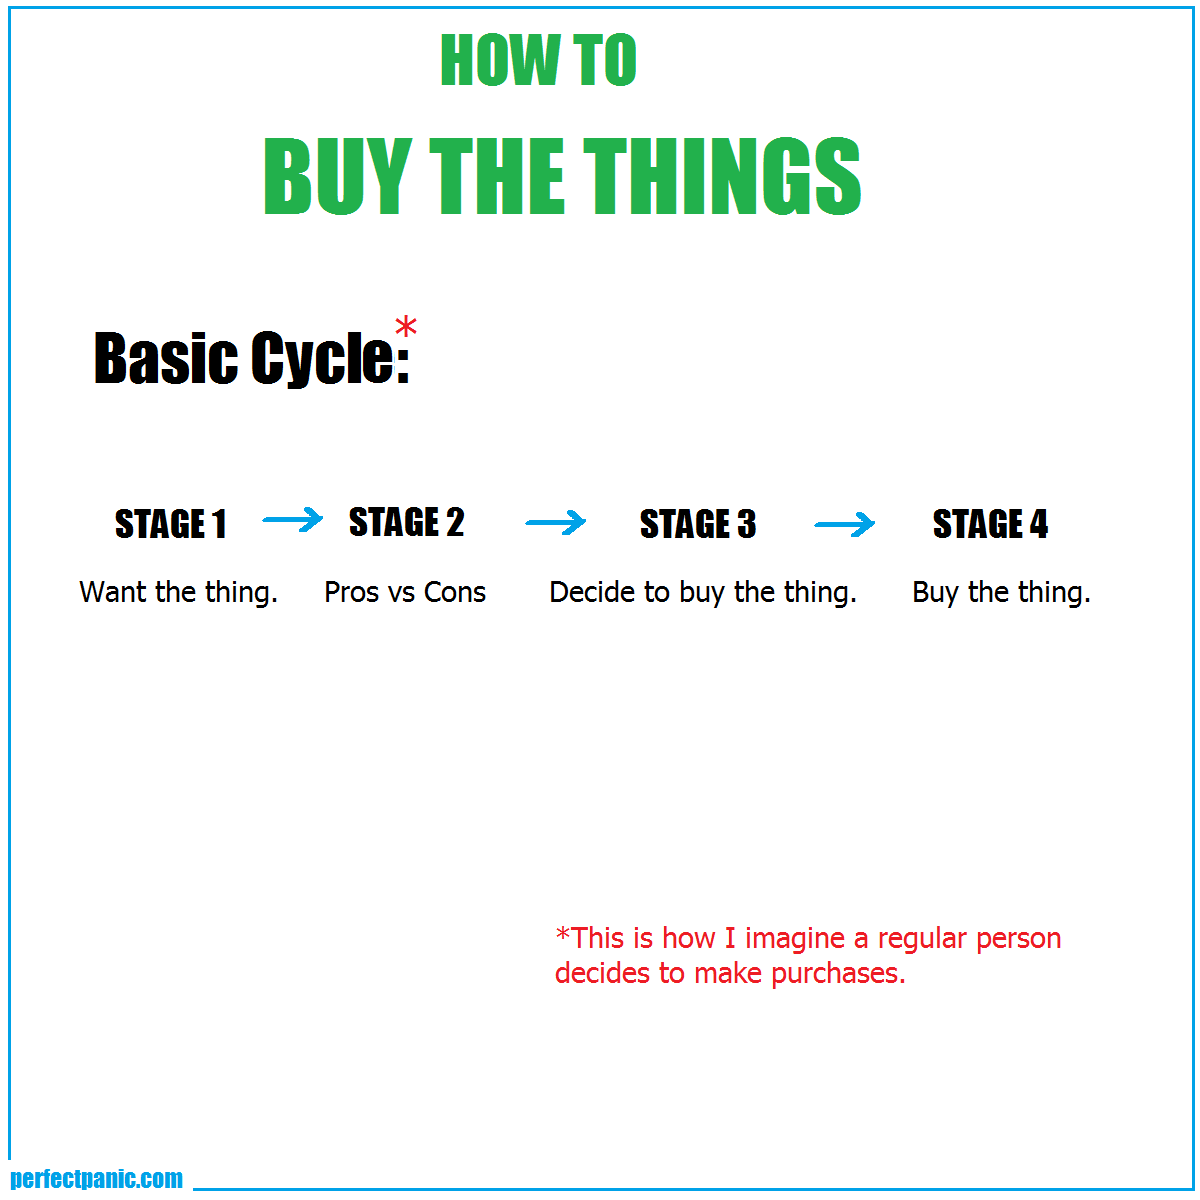 01 Buy the things Basic Cycle